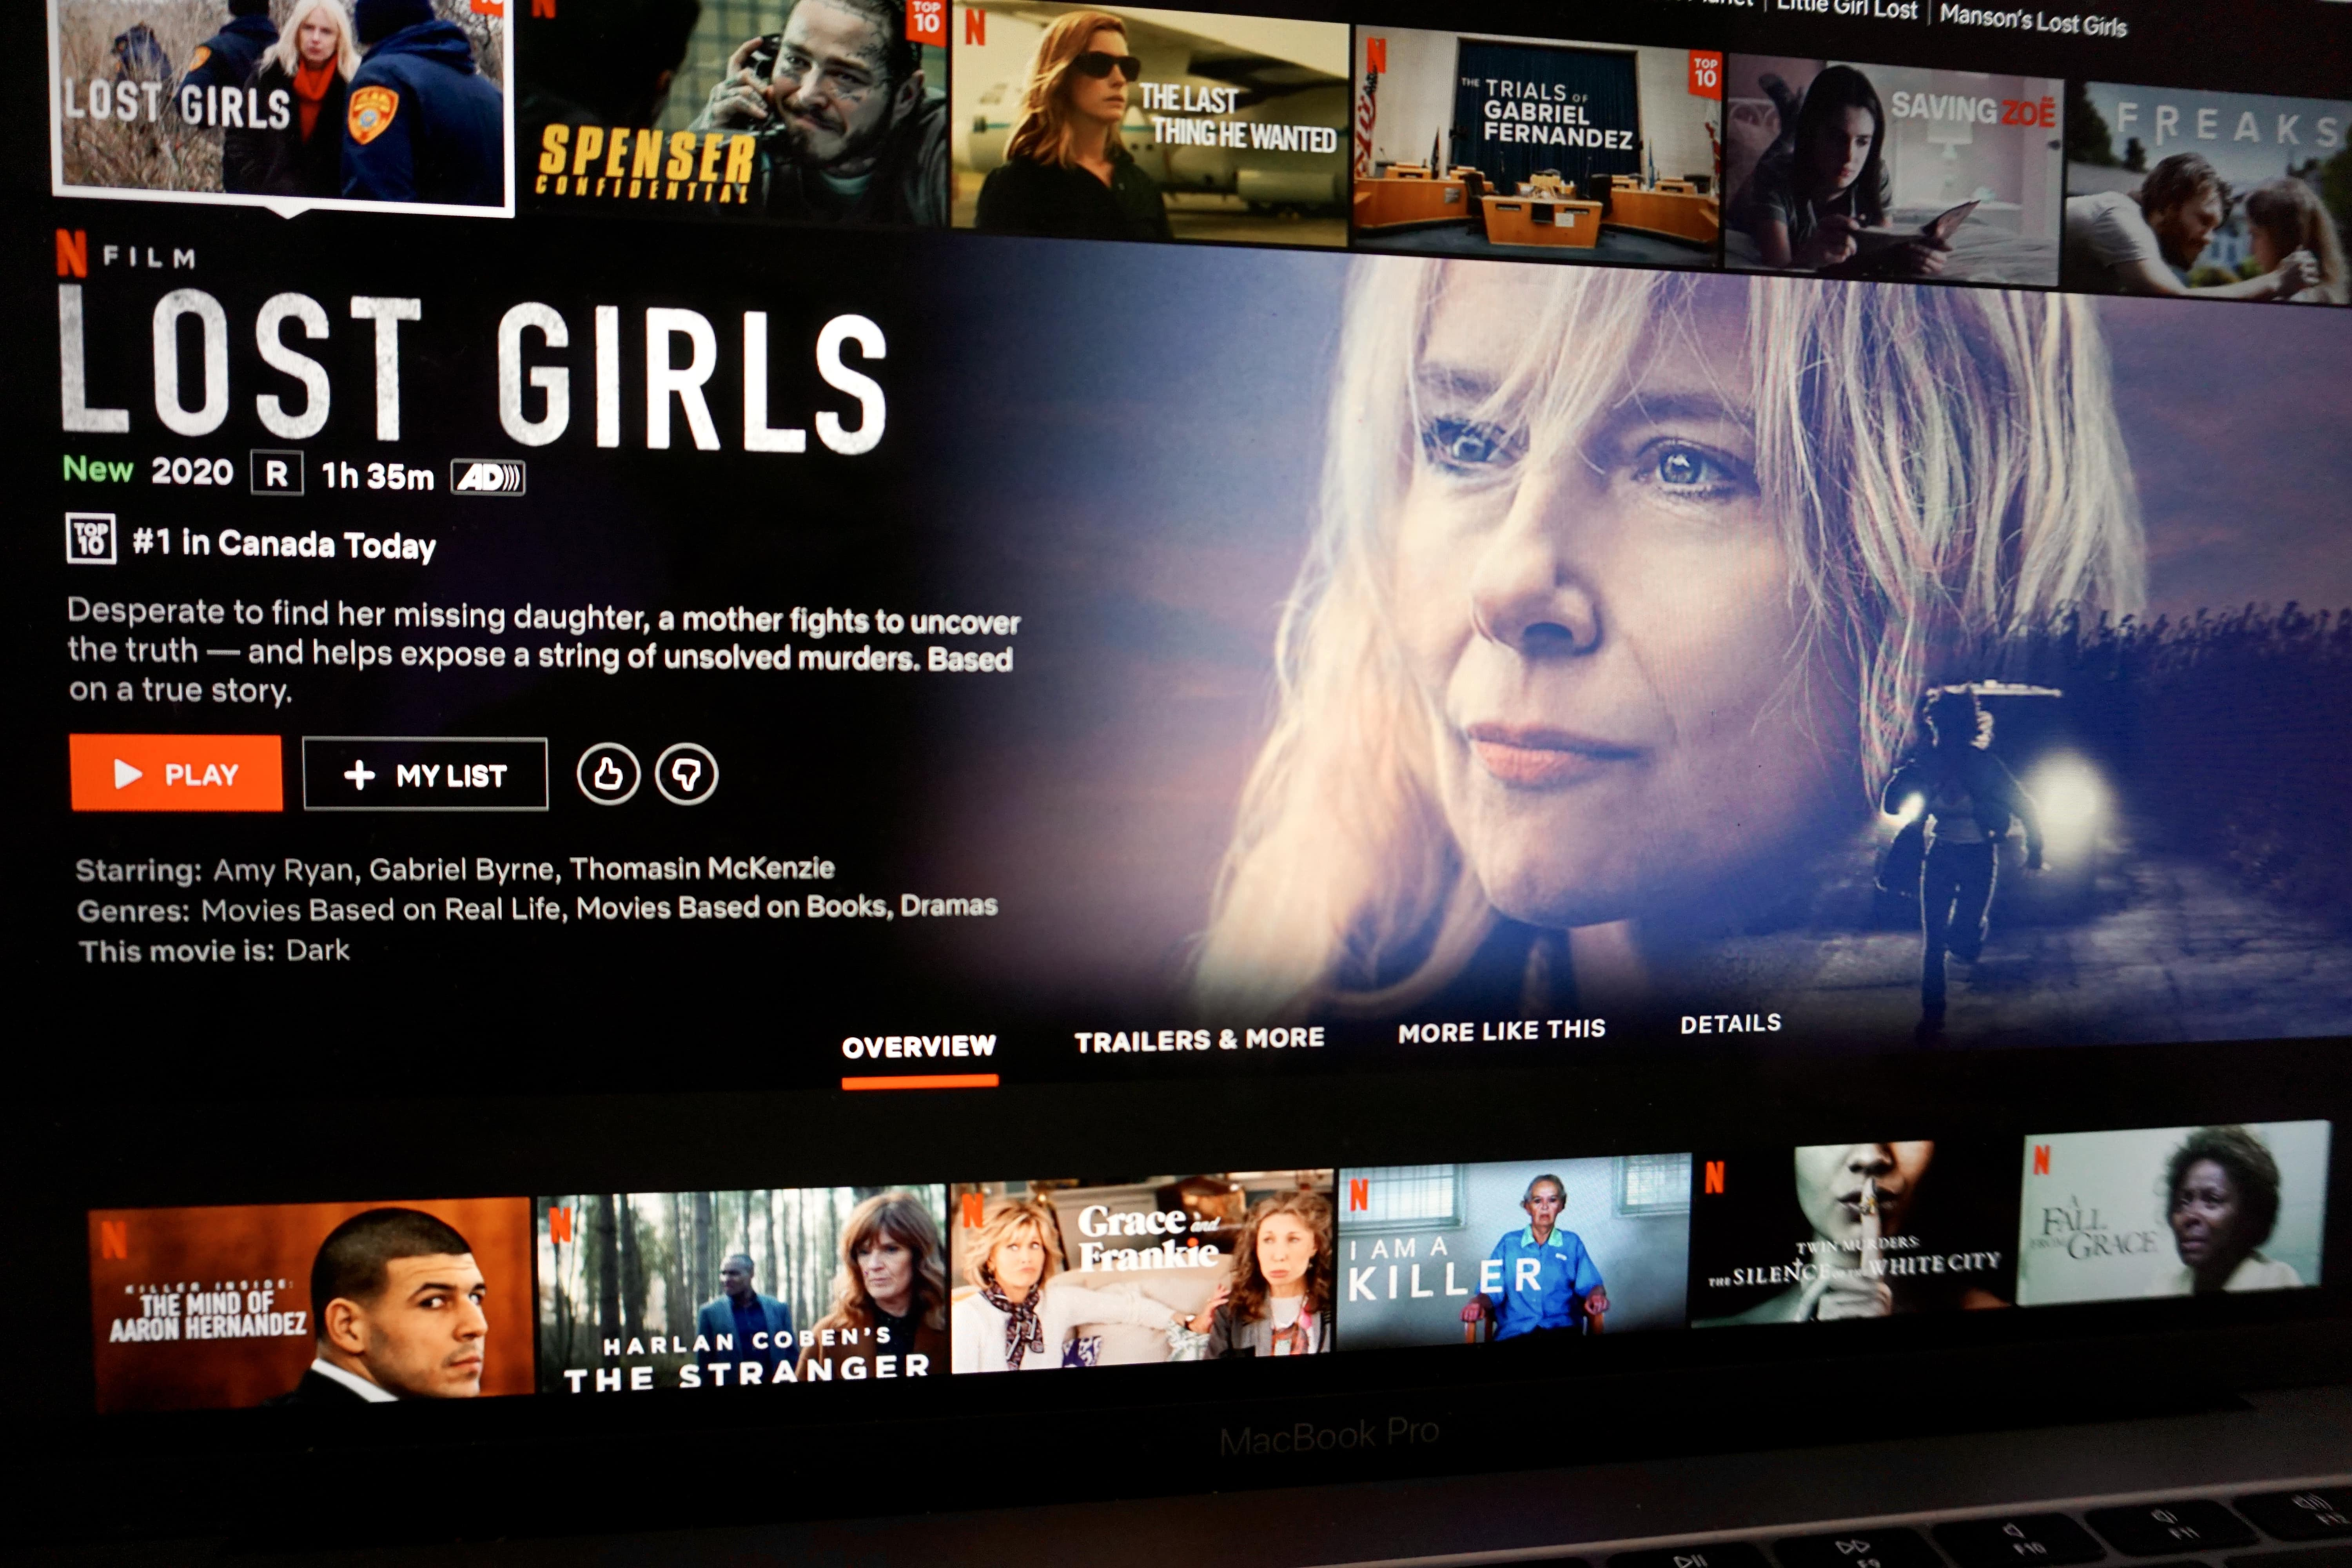 Lost Girls loses interest